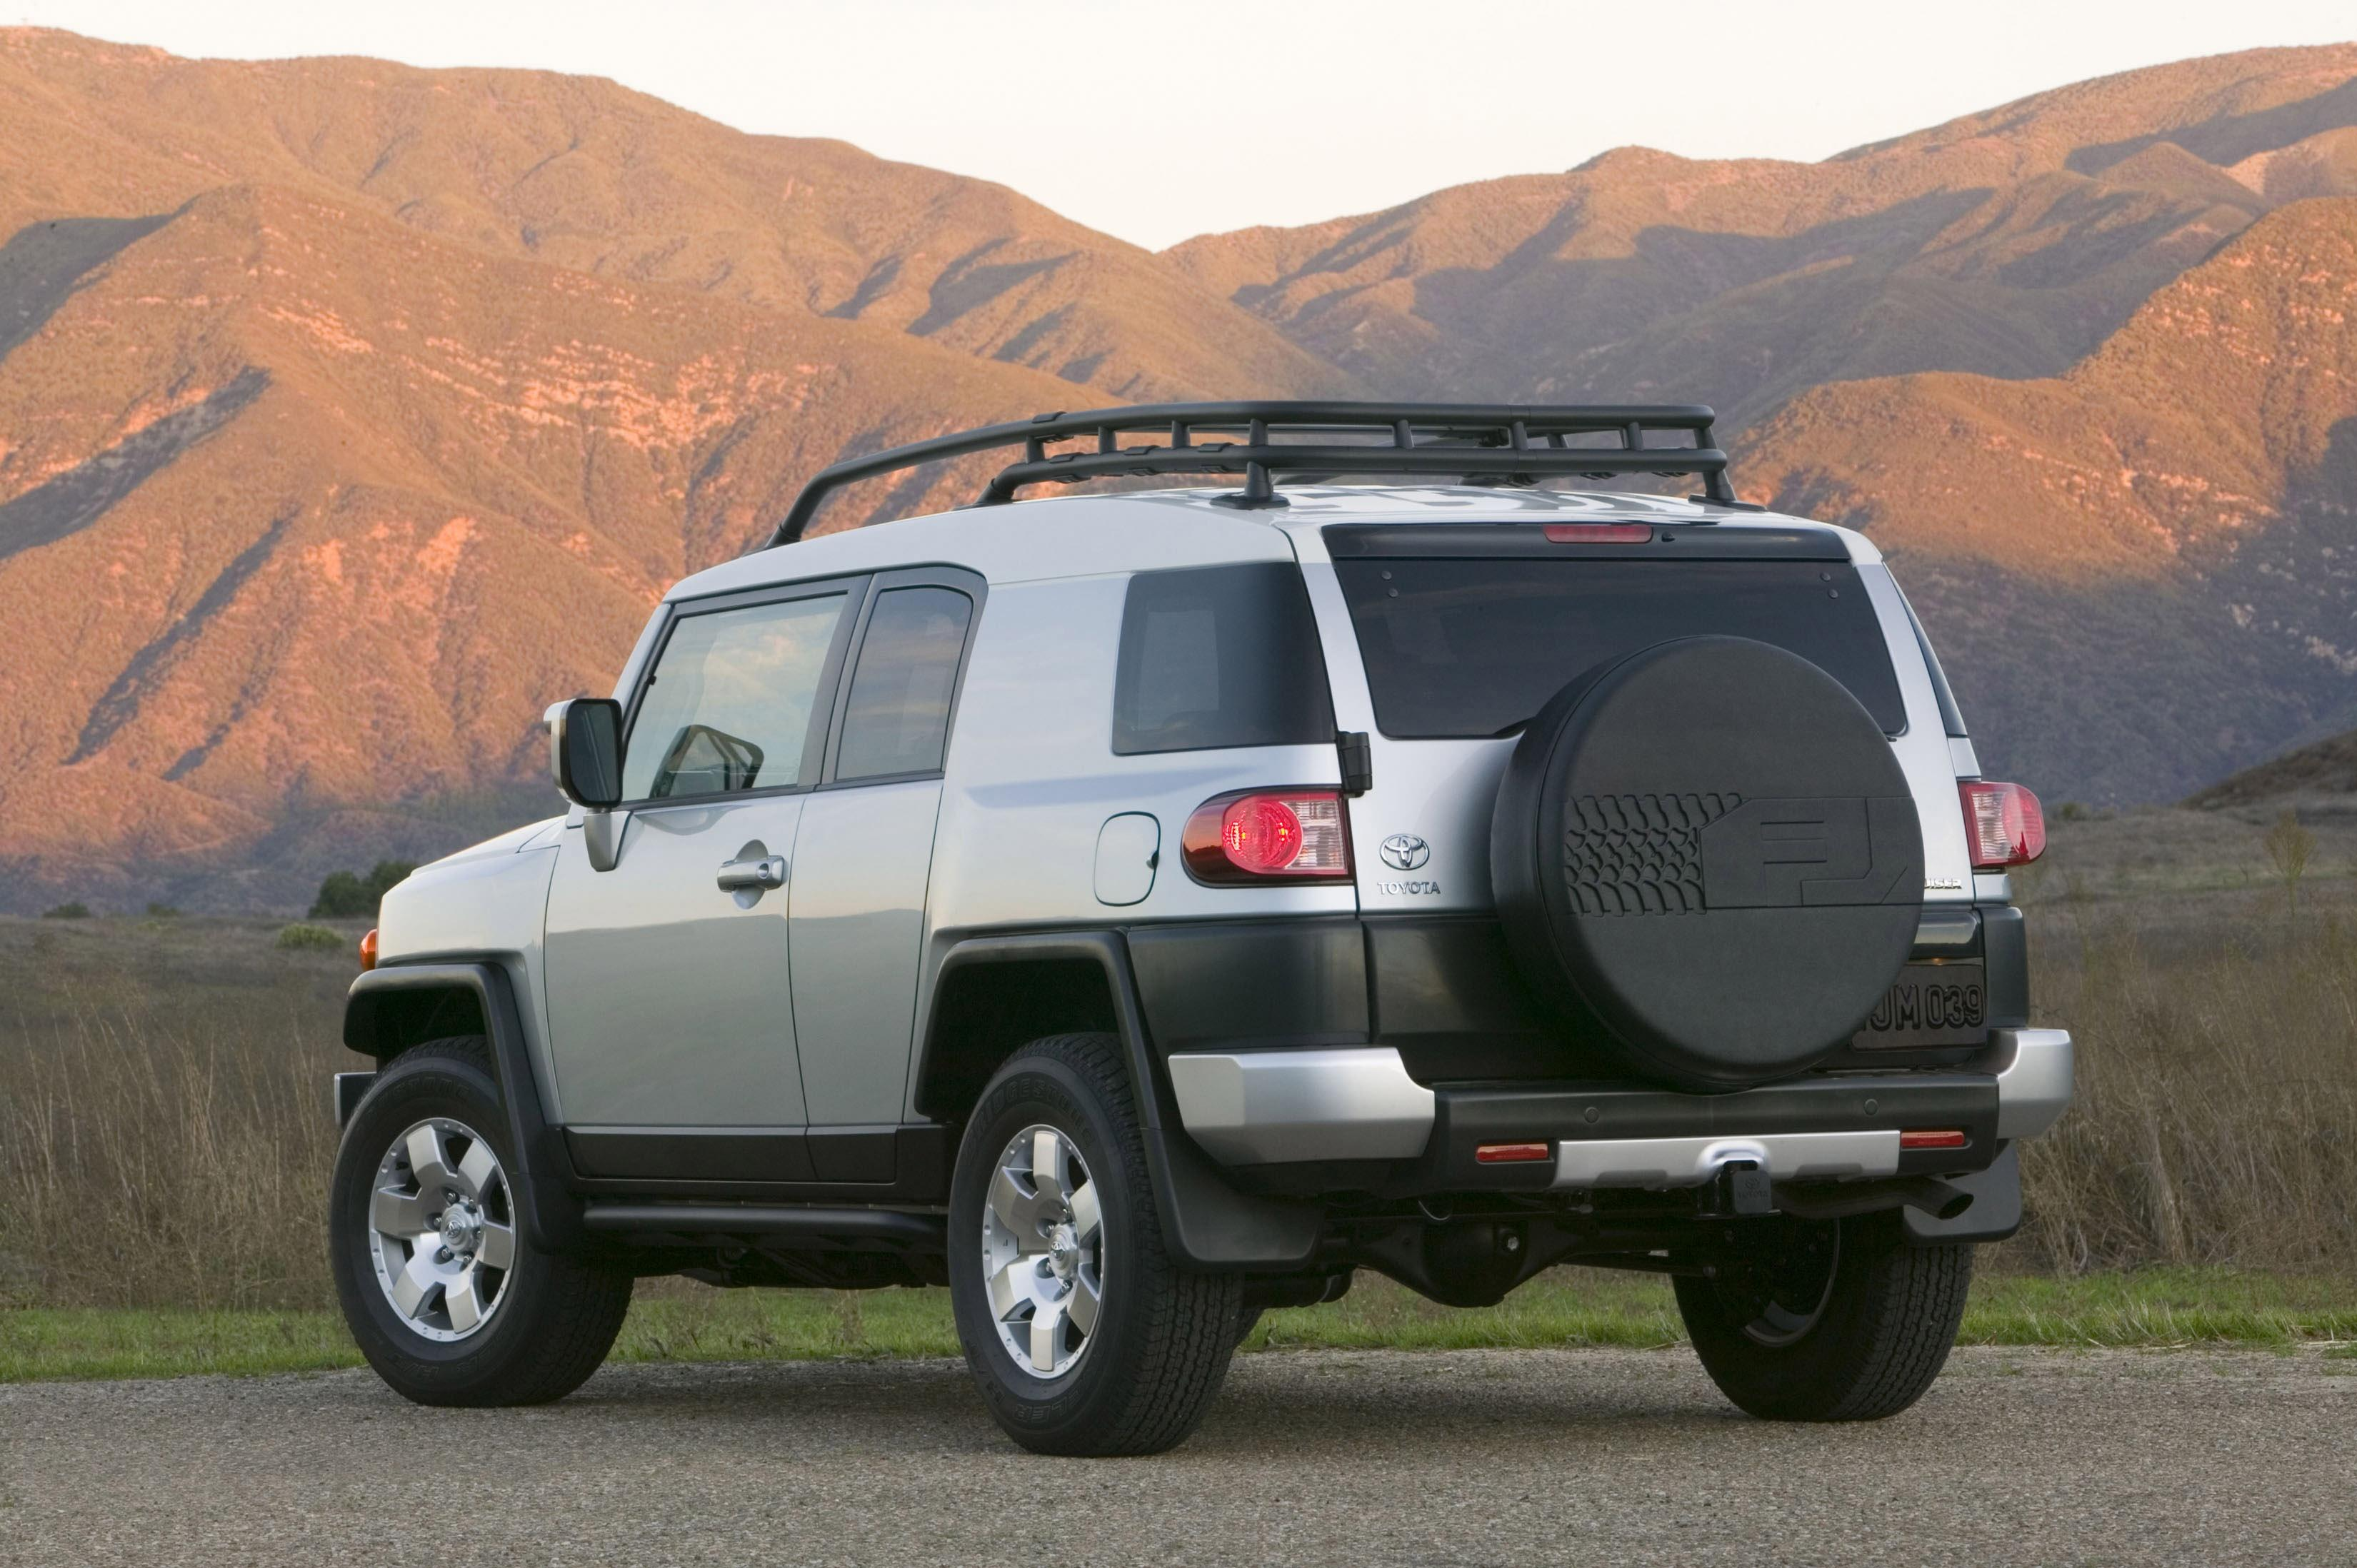 2008 toyota fj cruiser picture 8679. Black Bedroom Furniture Sets. Home Design Ideas